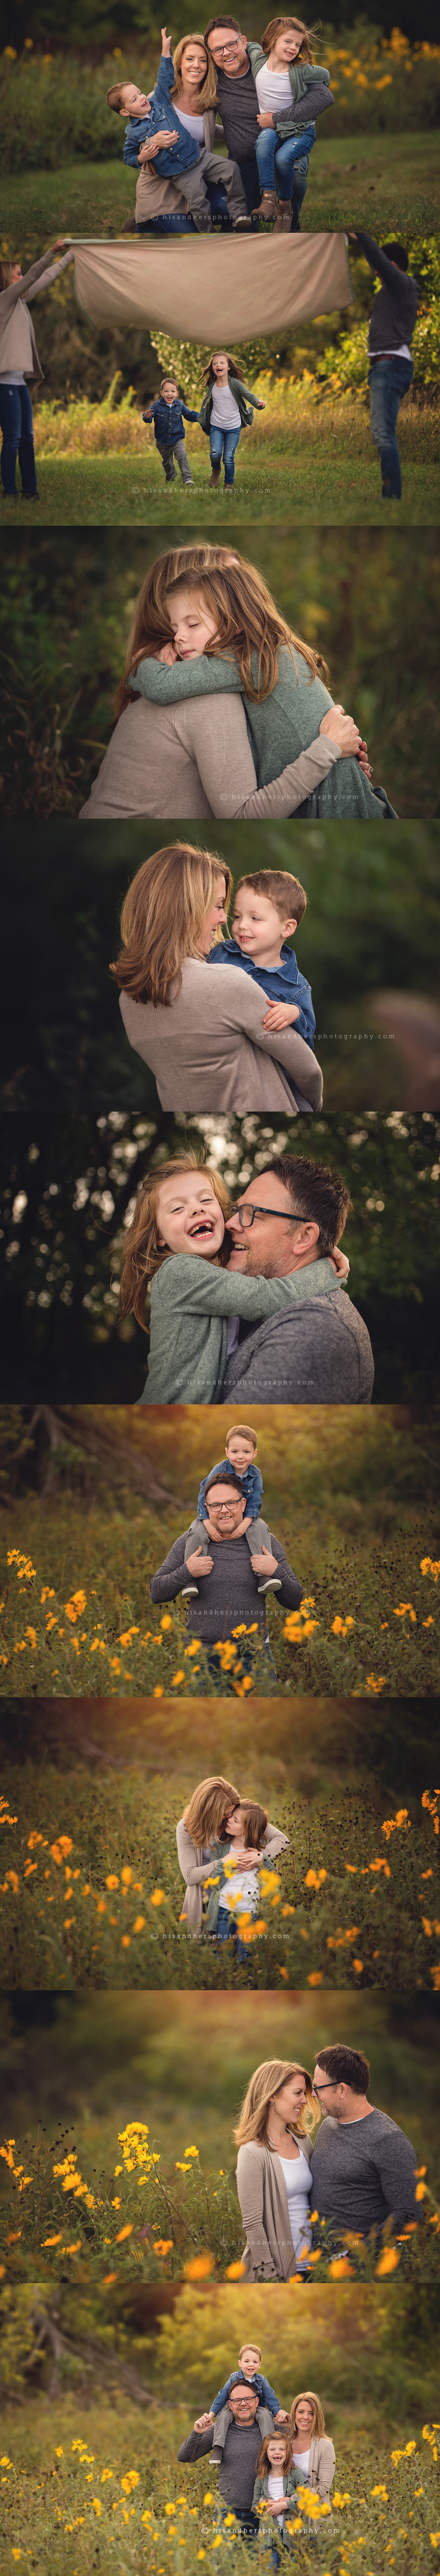 des moines iowa family pictures portraits photographer family photo session iowa photography photographer